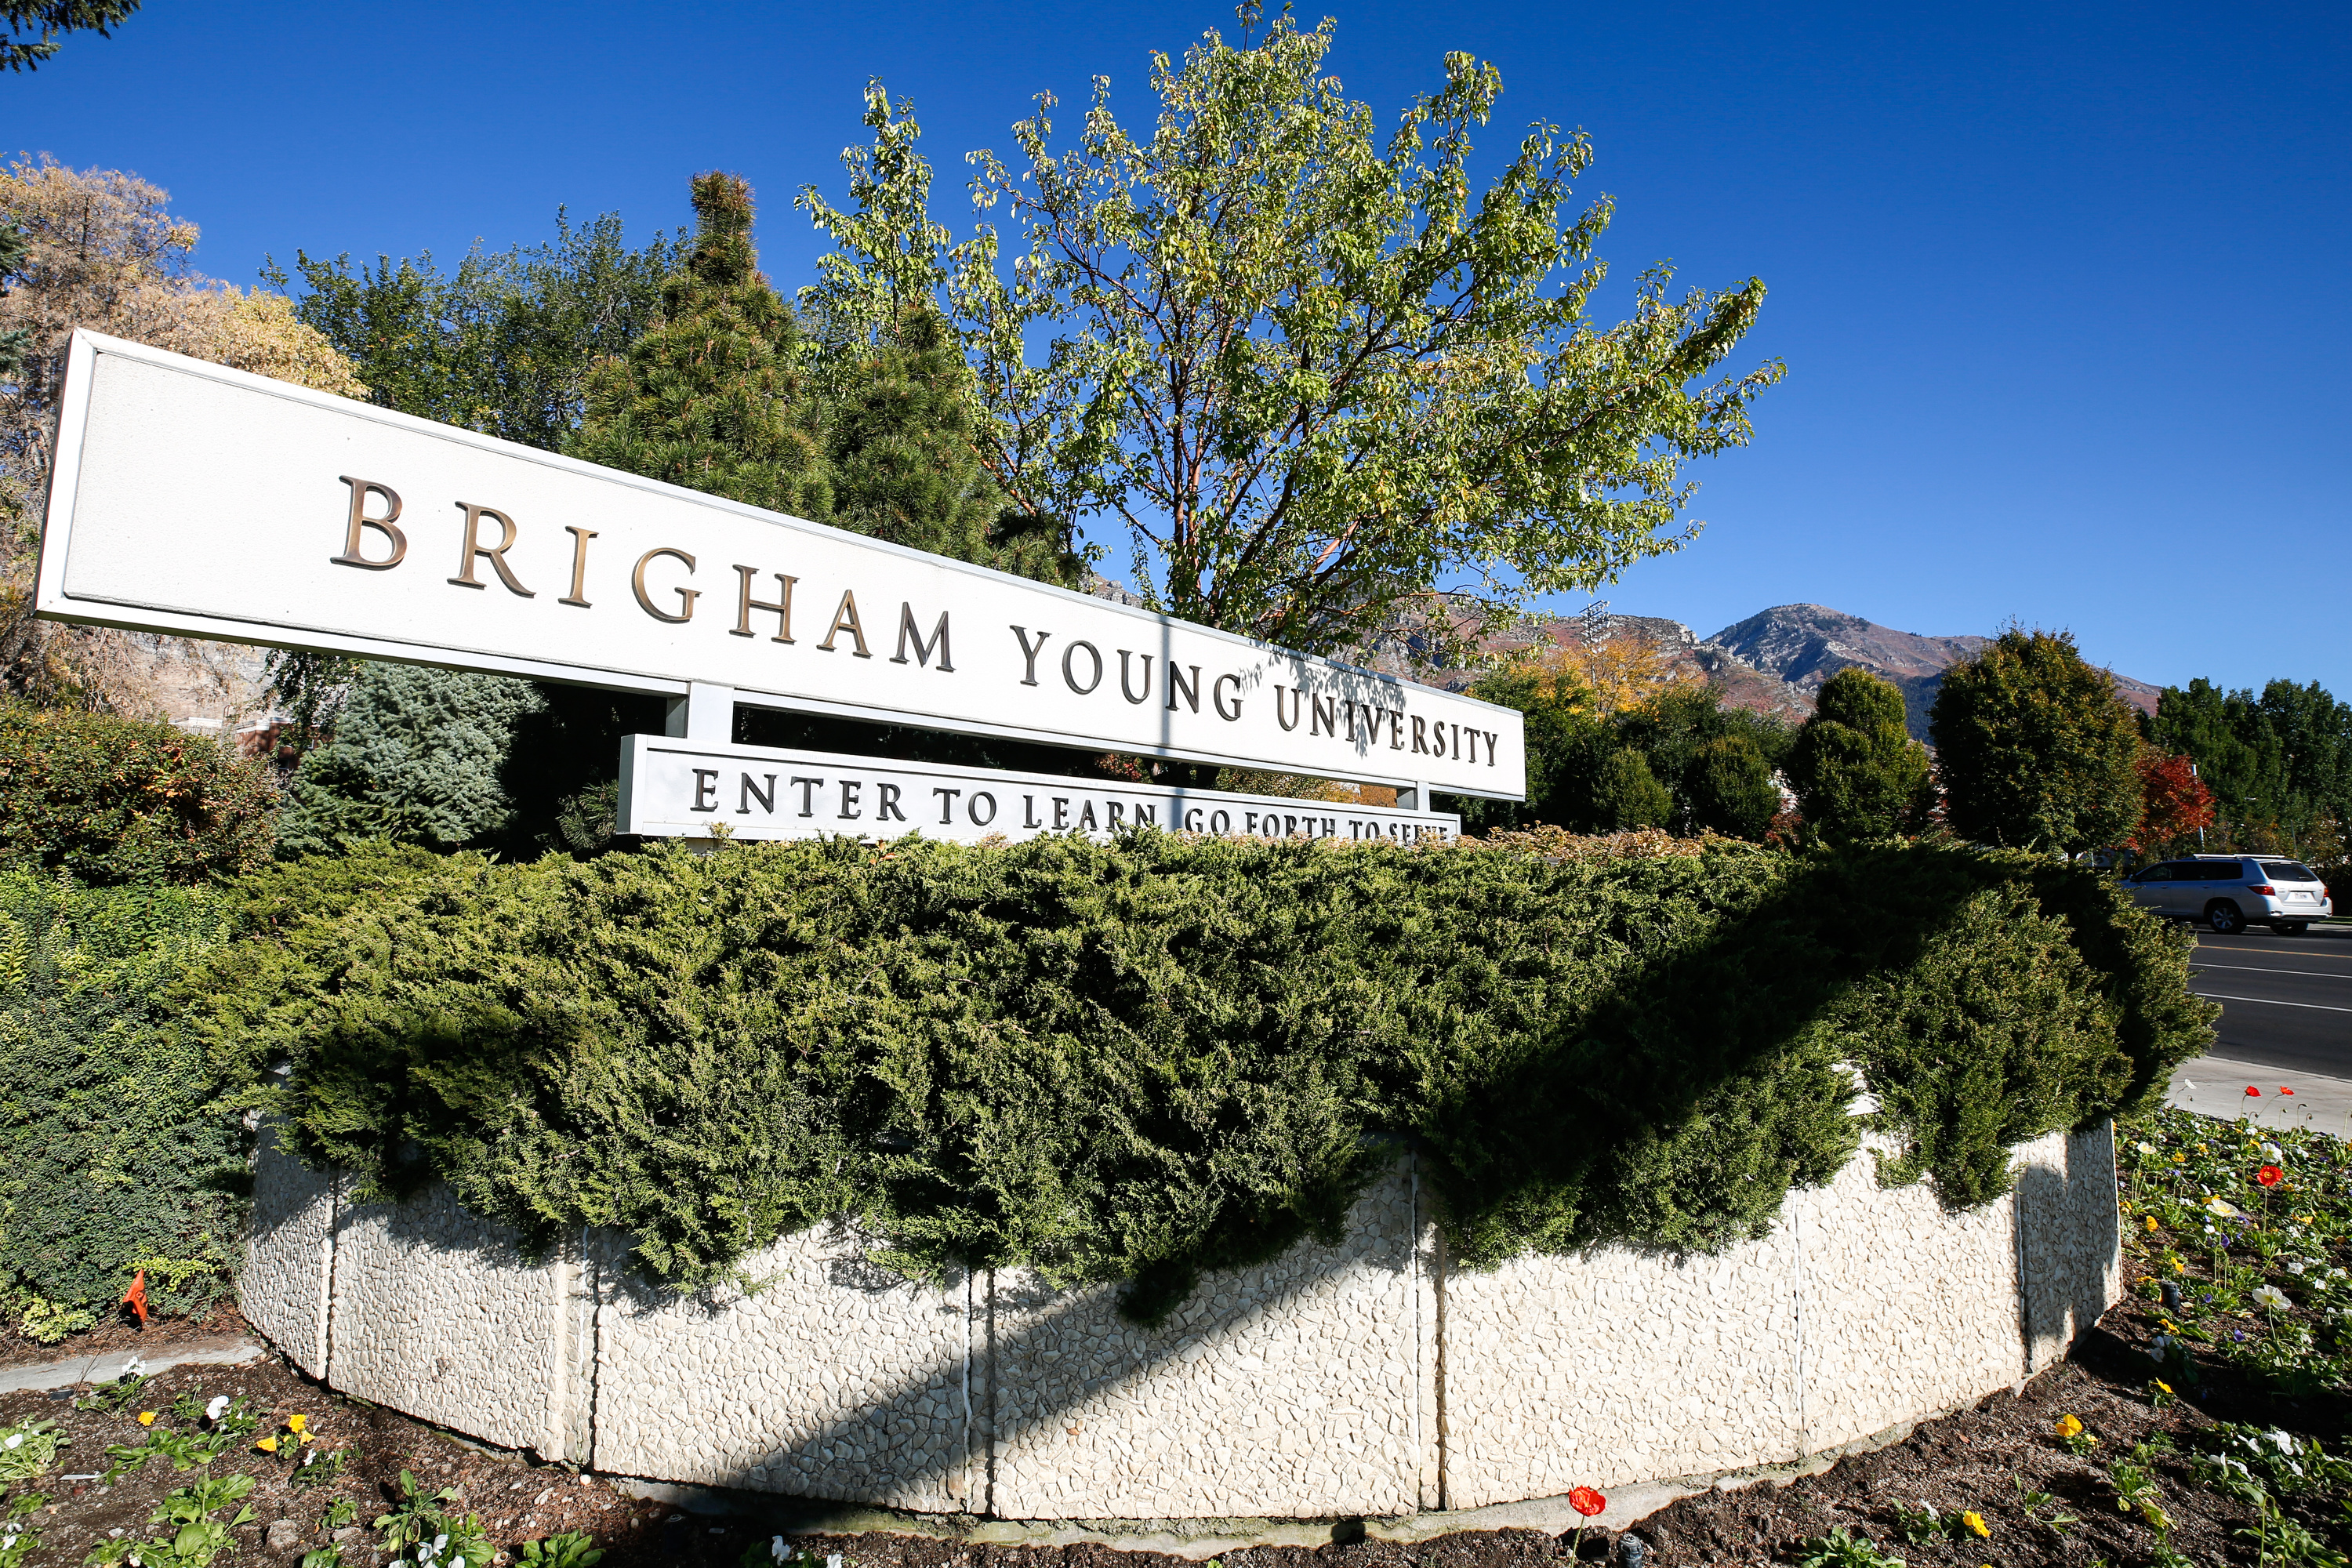 The Brigham Young University campus in Provo is pictured on Monday, Oct. 12, 2020.